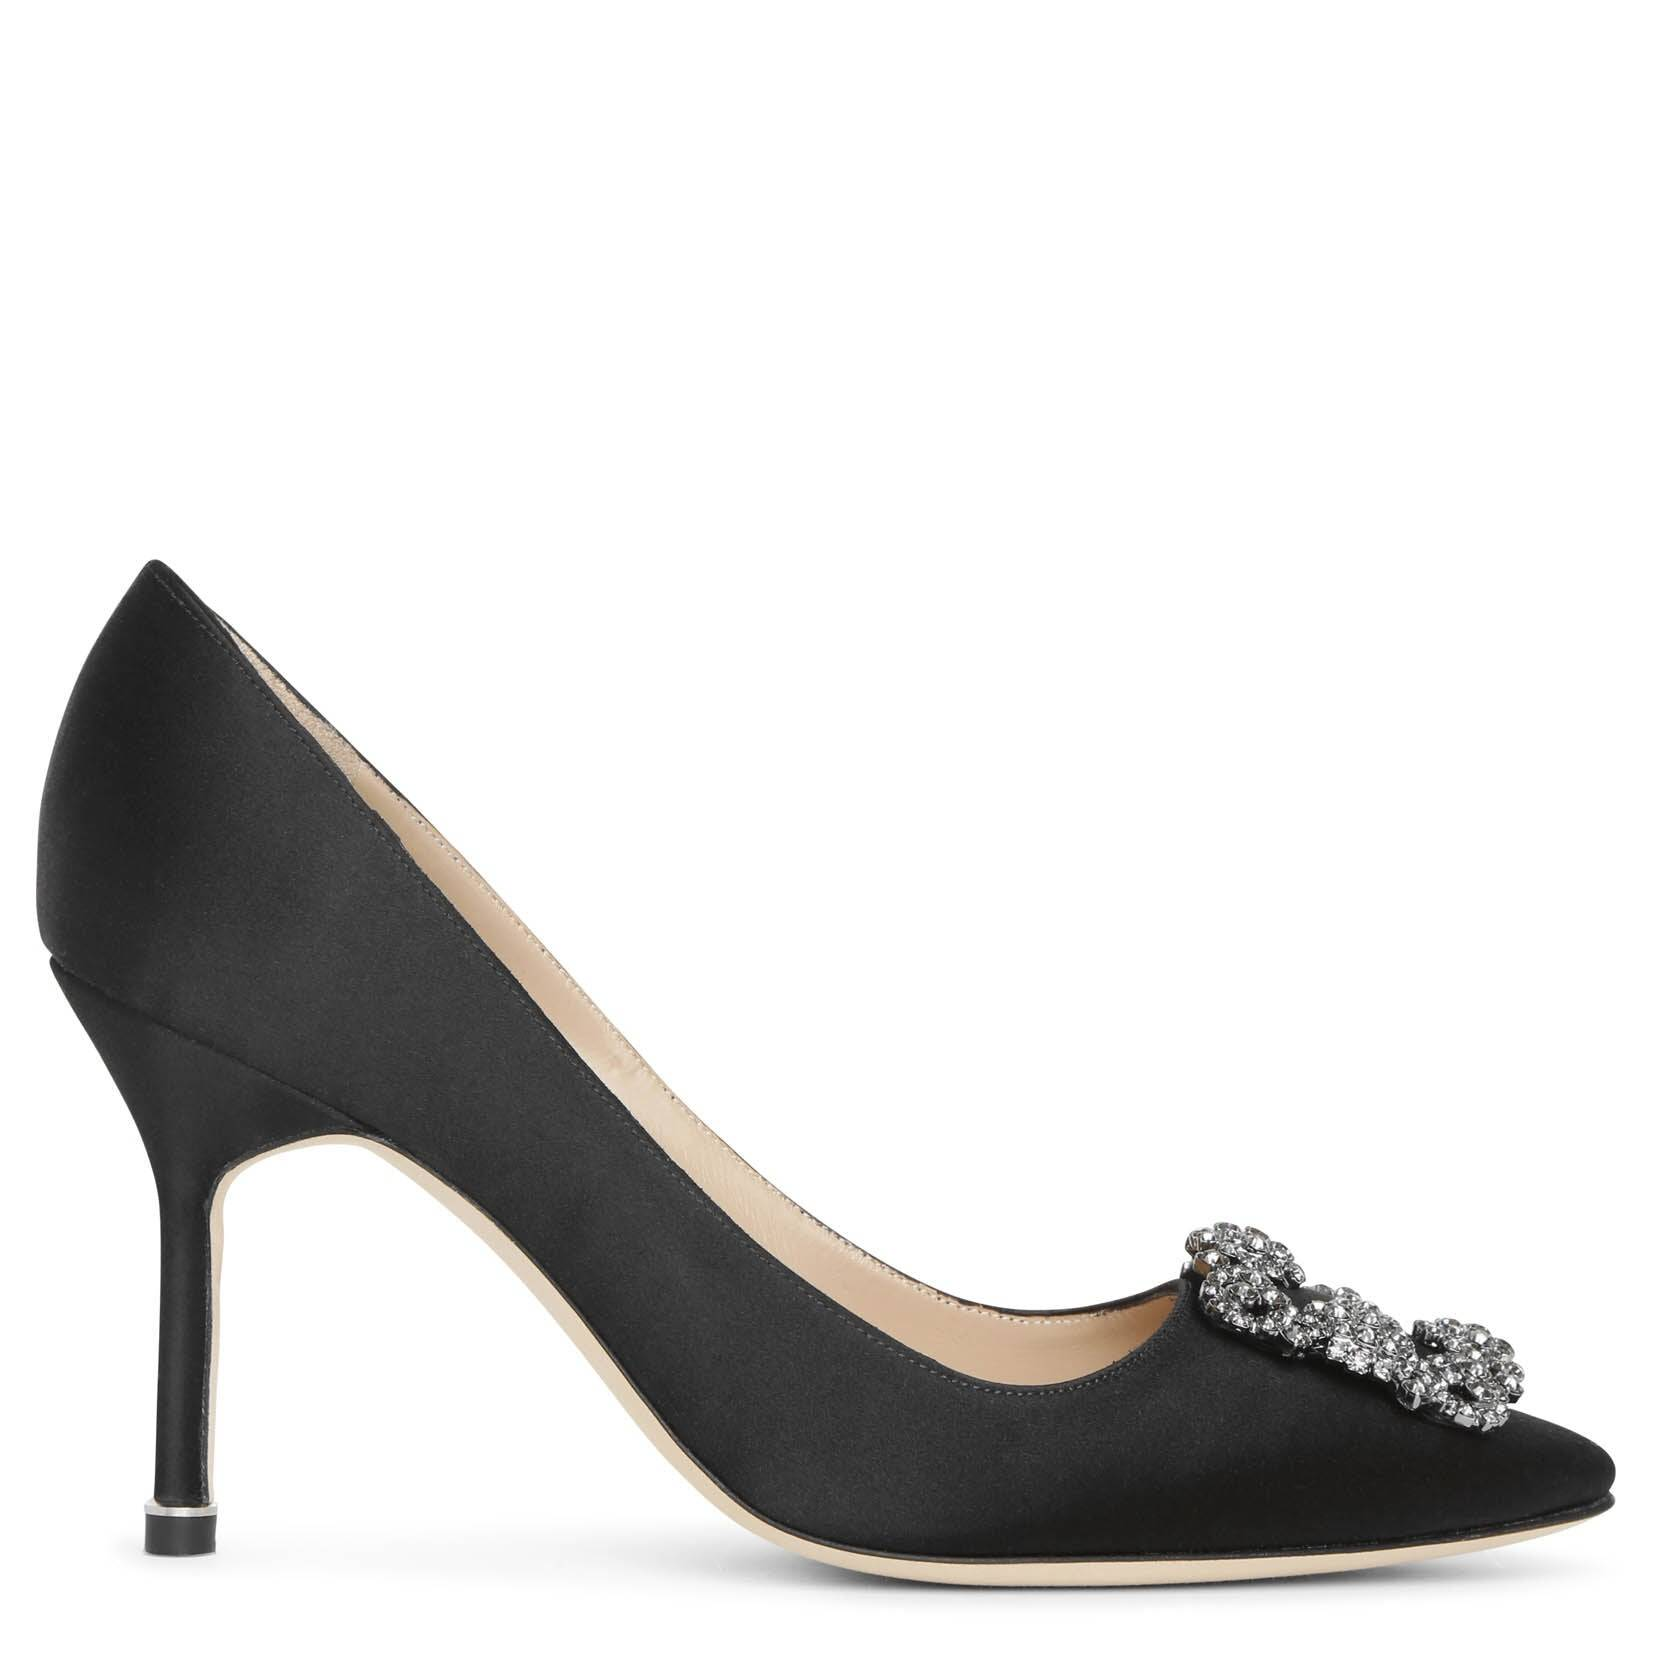 Manolo Blahnik Hangisi 90 black satin pumps  - Black - female - Size: 37,5